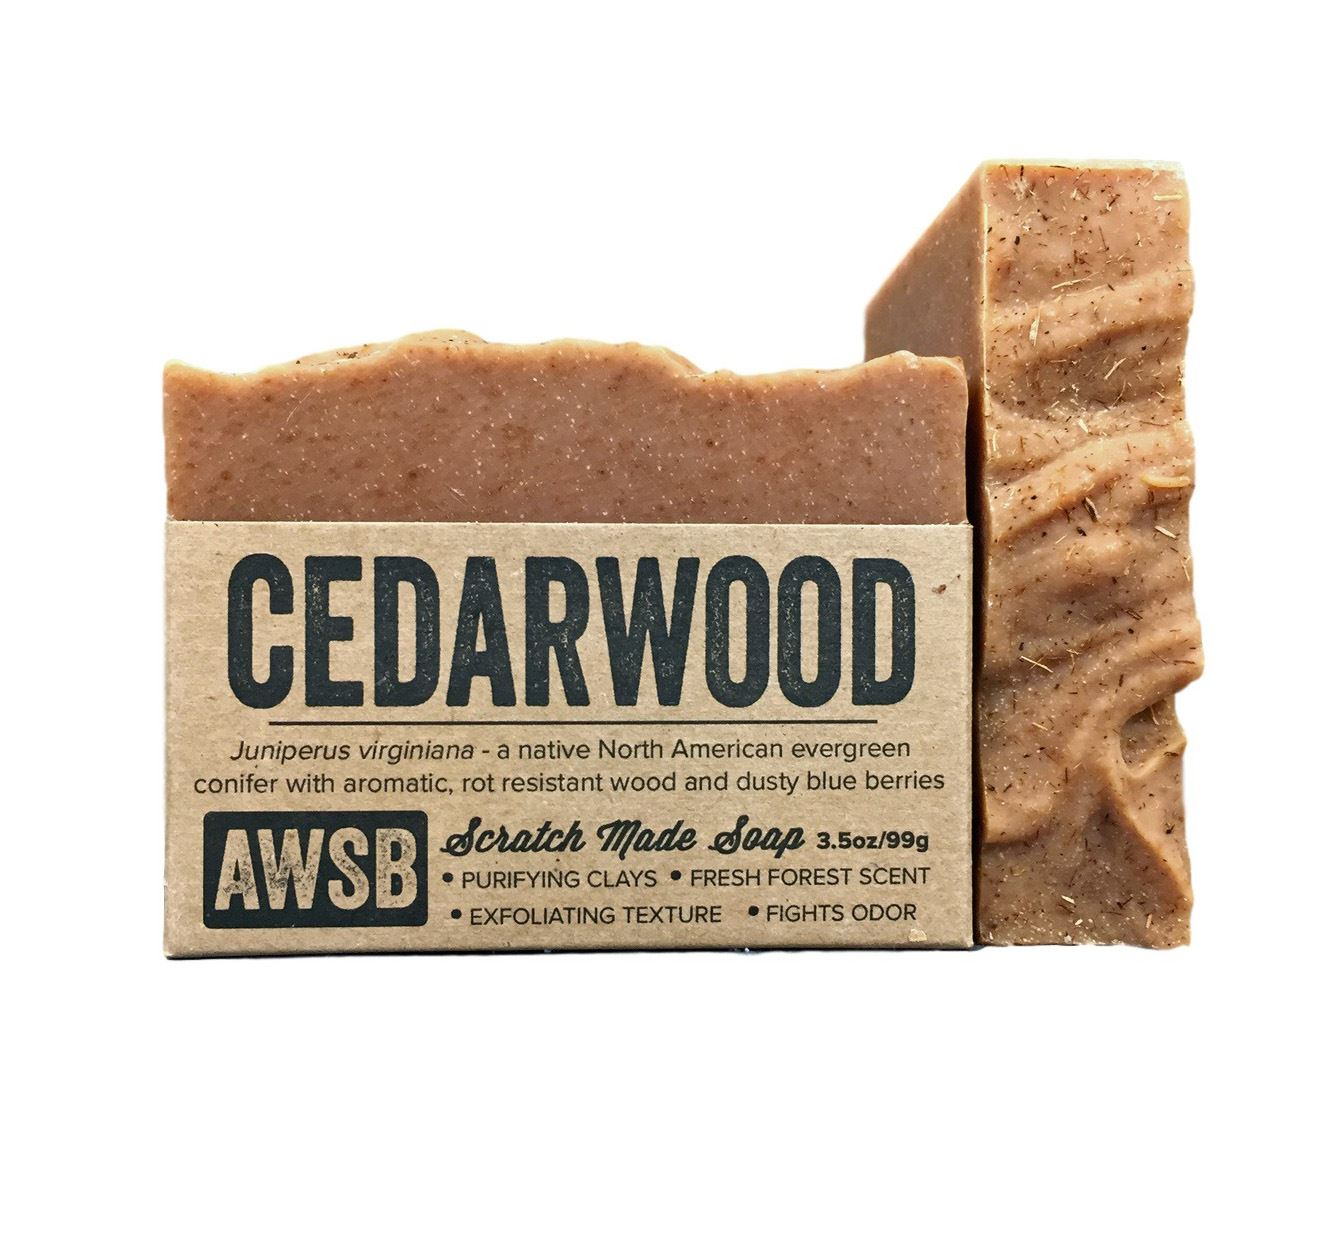 cedarwood soap cedarwood,cedar,juniper,handmade,natural,organic,soap,forest,essential oils,texas,outdoor,moroccan red clay,clay